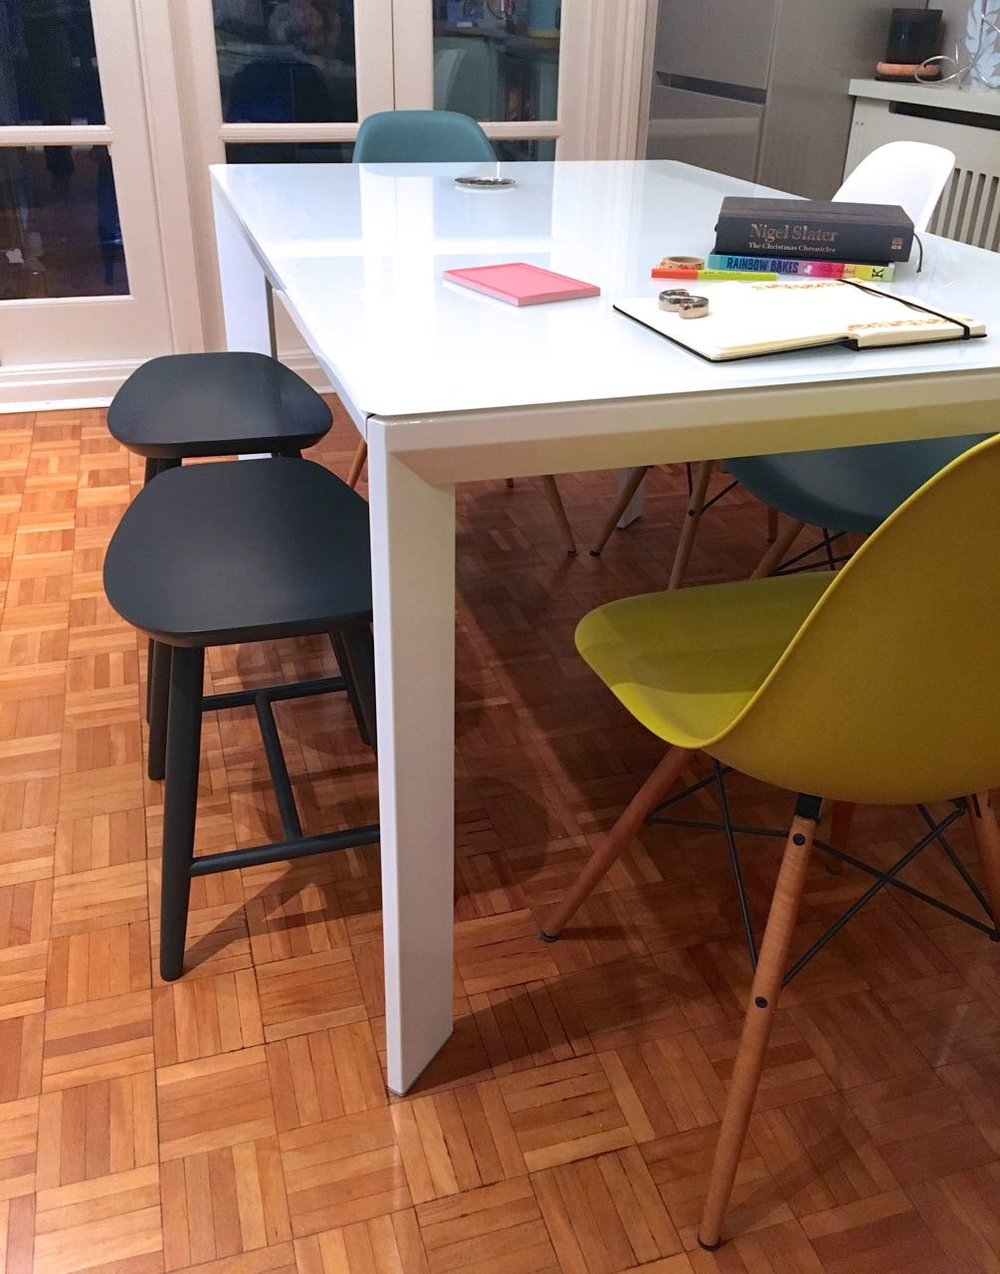 The stools (from Cult Furniture) provide more flexibility than a bench would